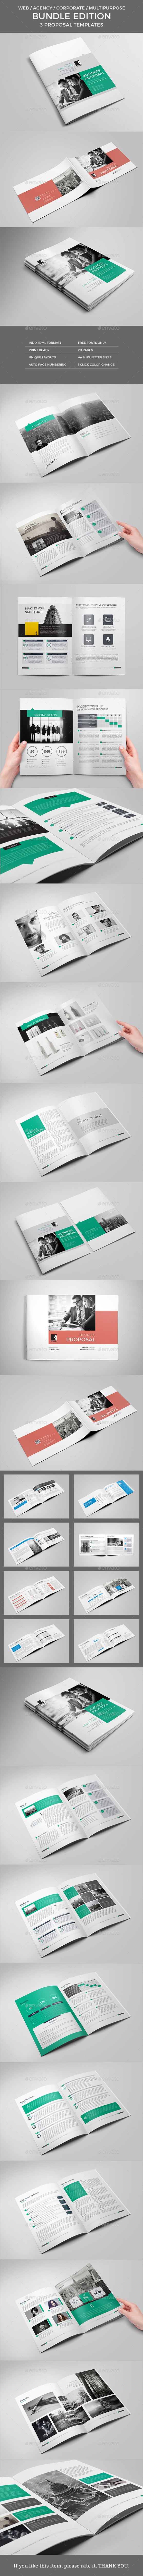 3-in-1 Proposal Bundle - Proposals & Invoices Stationery